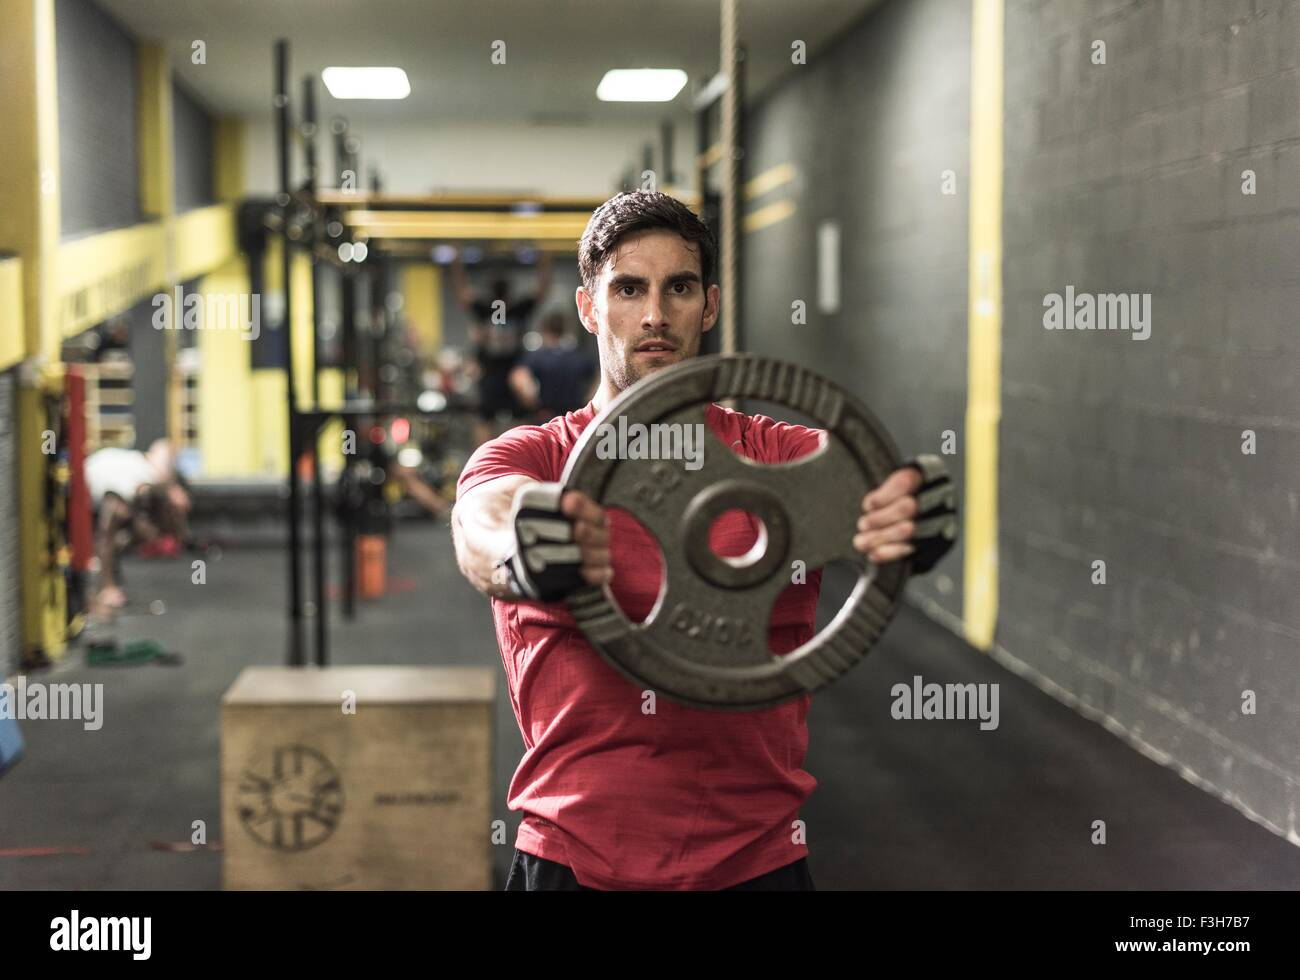 Mid adult man working out at gym - Stock Image